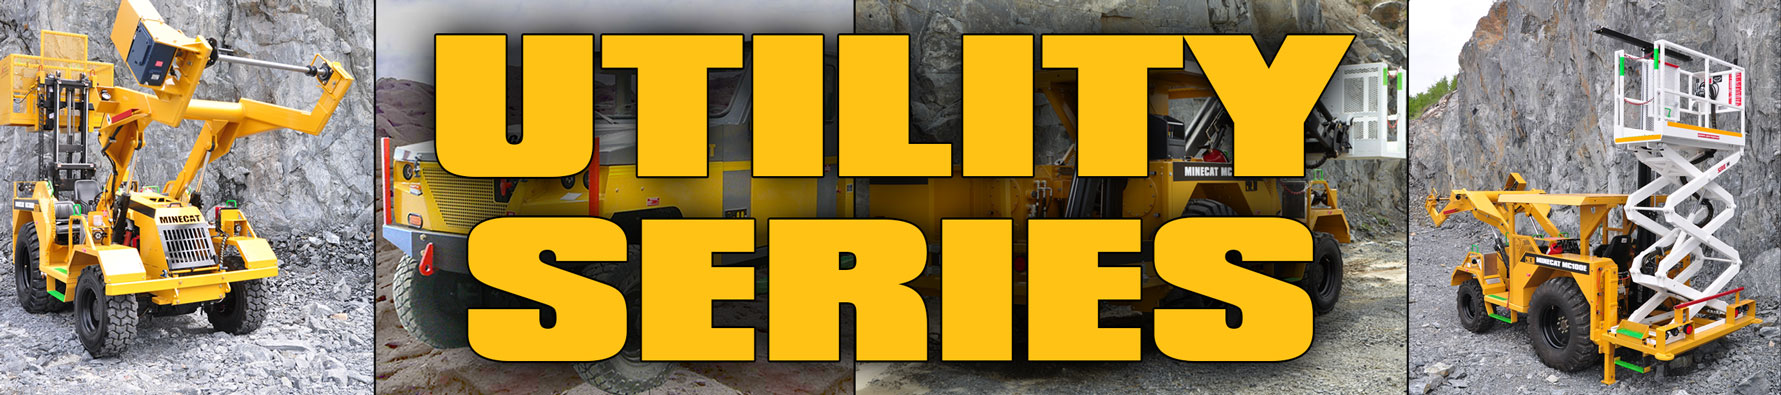 MINECAT Electric Utility Vehicle Series Product Banner